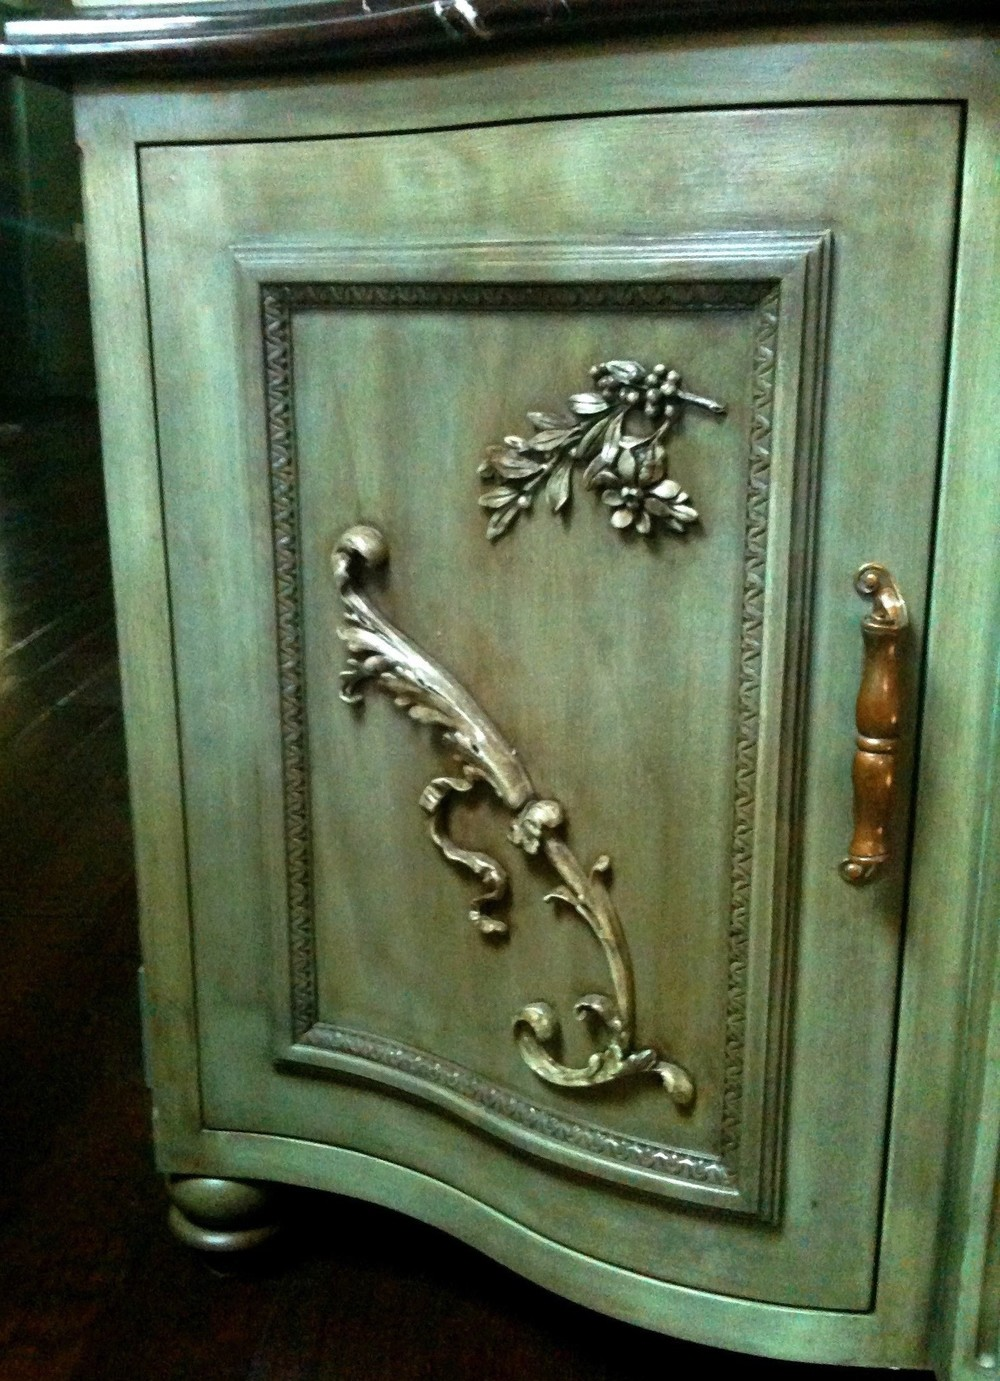 Kitchen hutch door with embellishments.